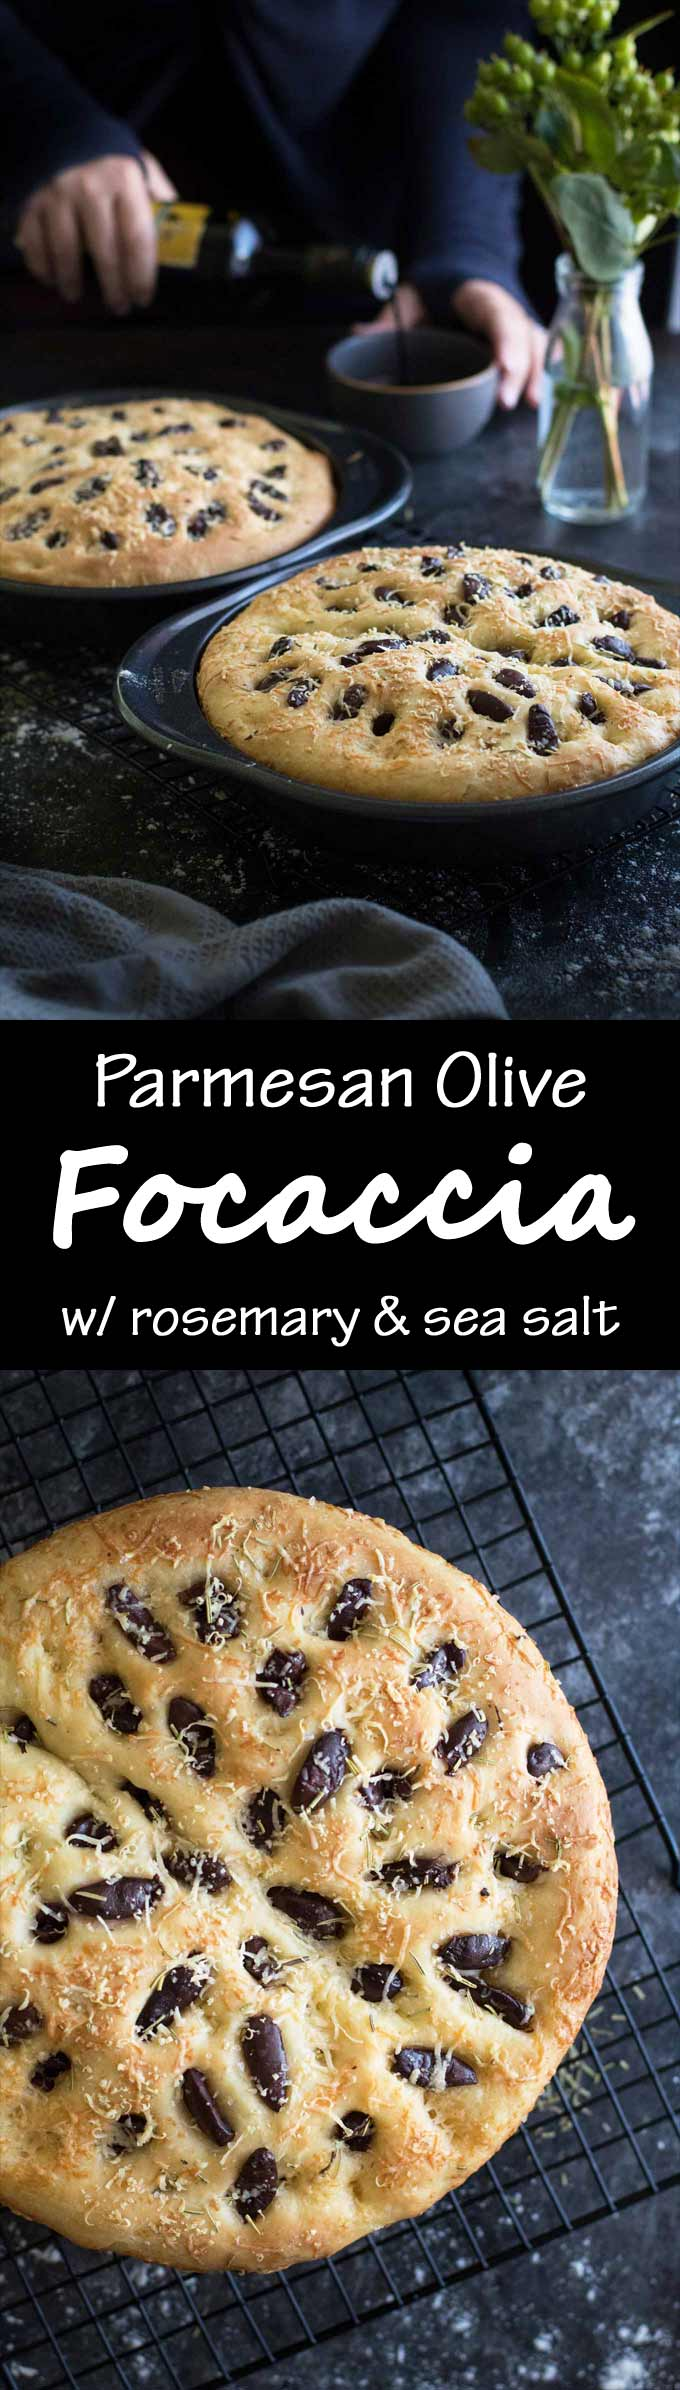 Parmesan Olive Focaccia | Rosemary | Sea Salt | Easy Bread